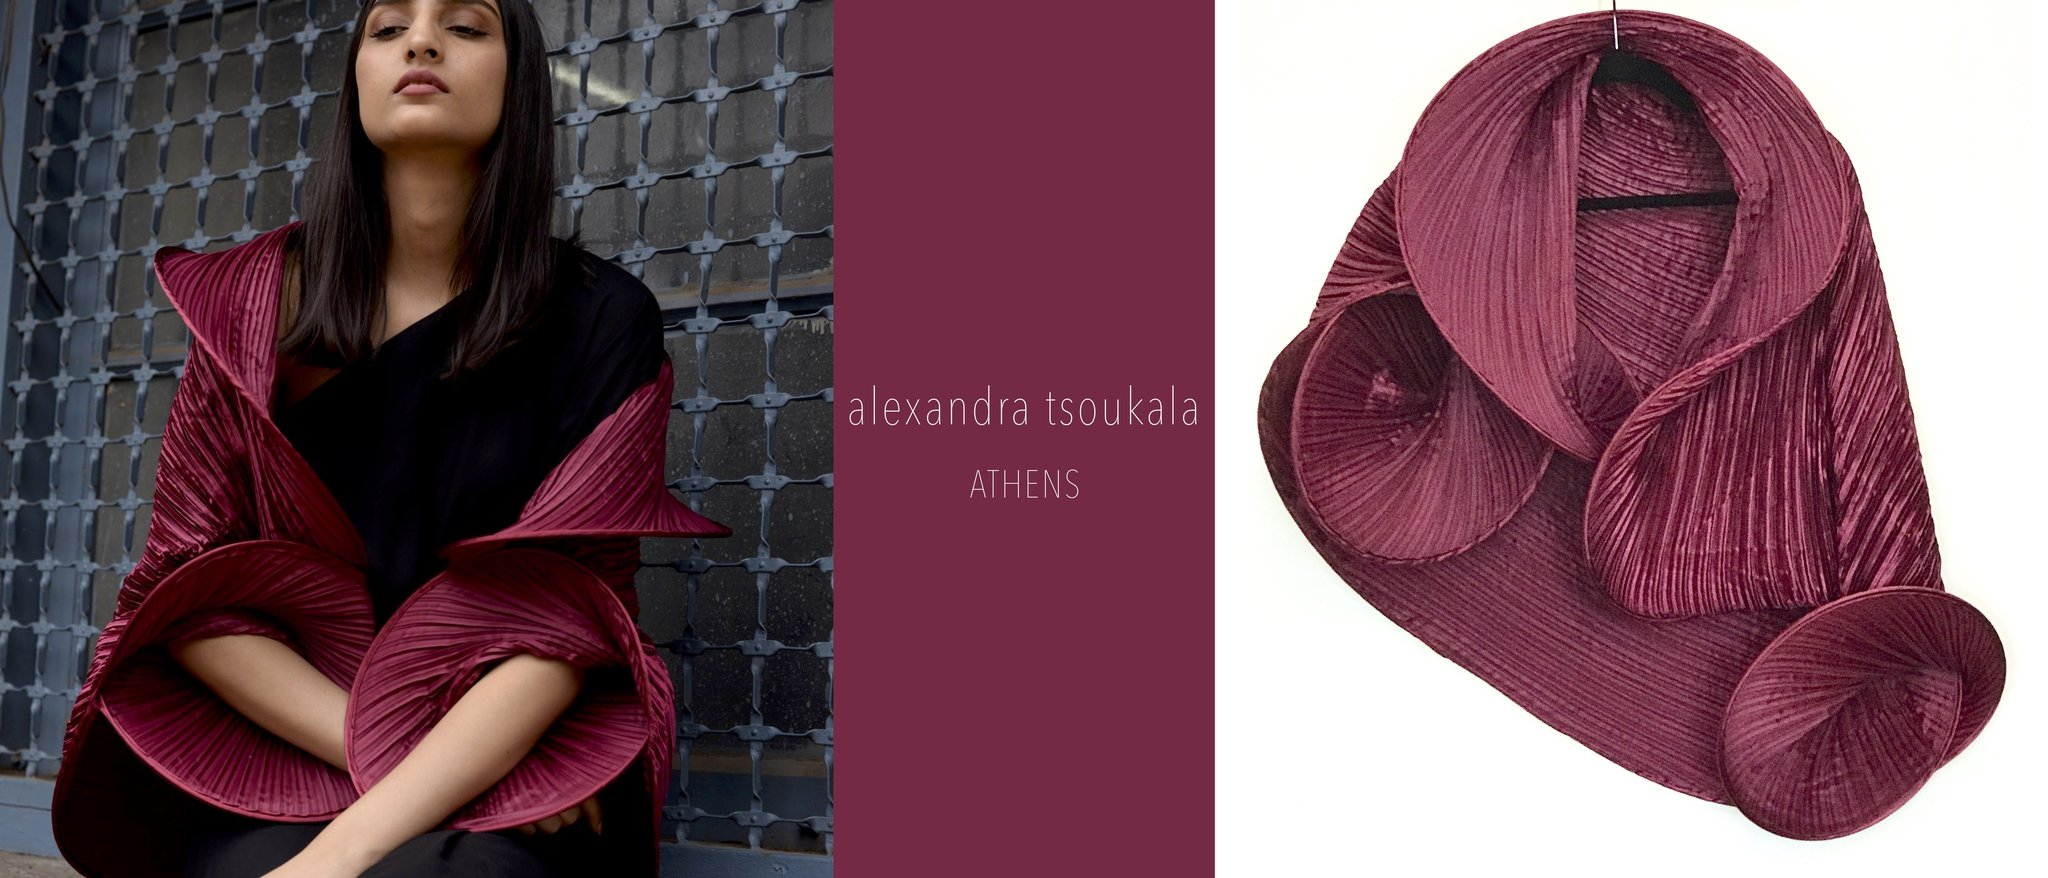 Scarlet Sage, alexander tsoukala, minimum design, statement capes, wraps,